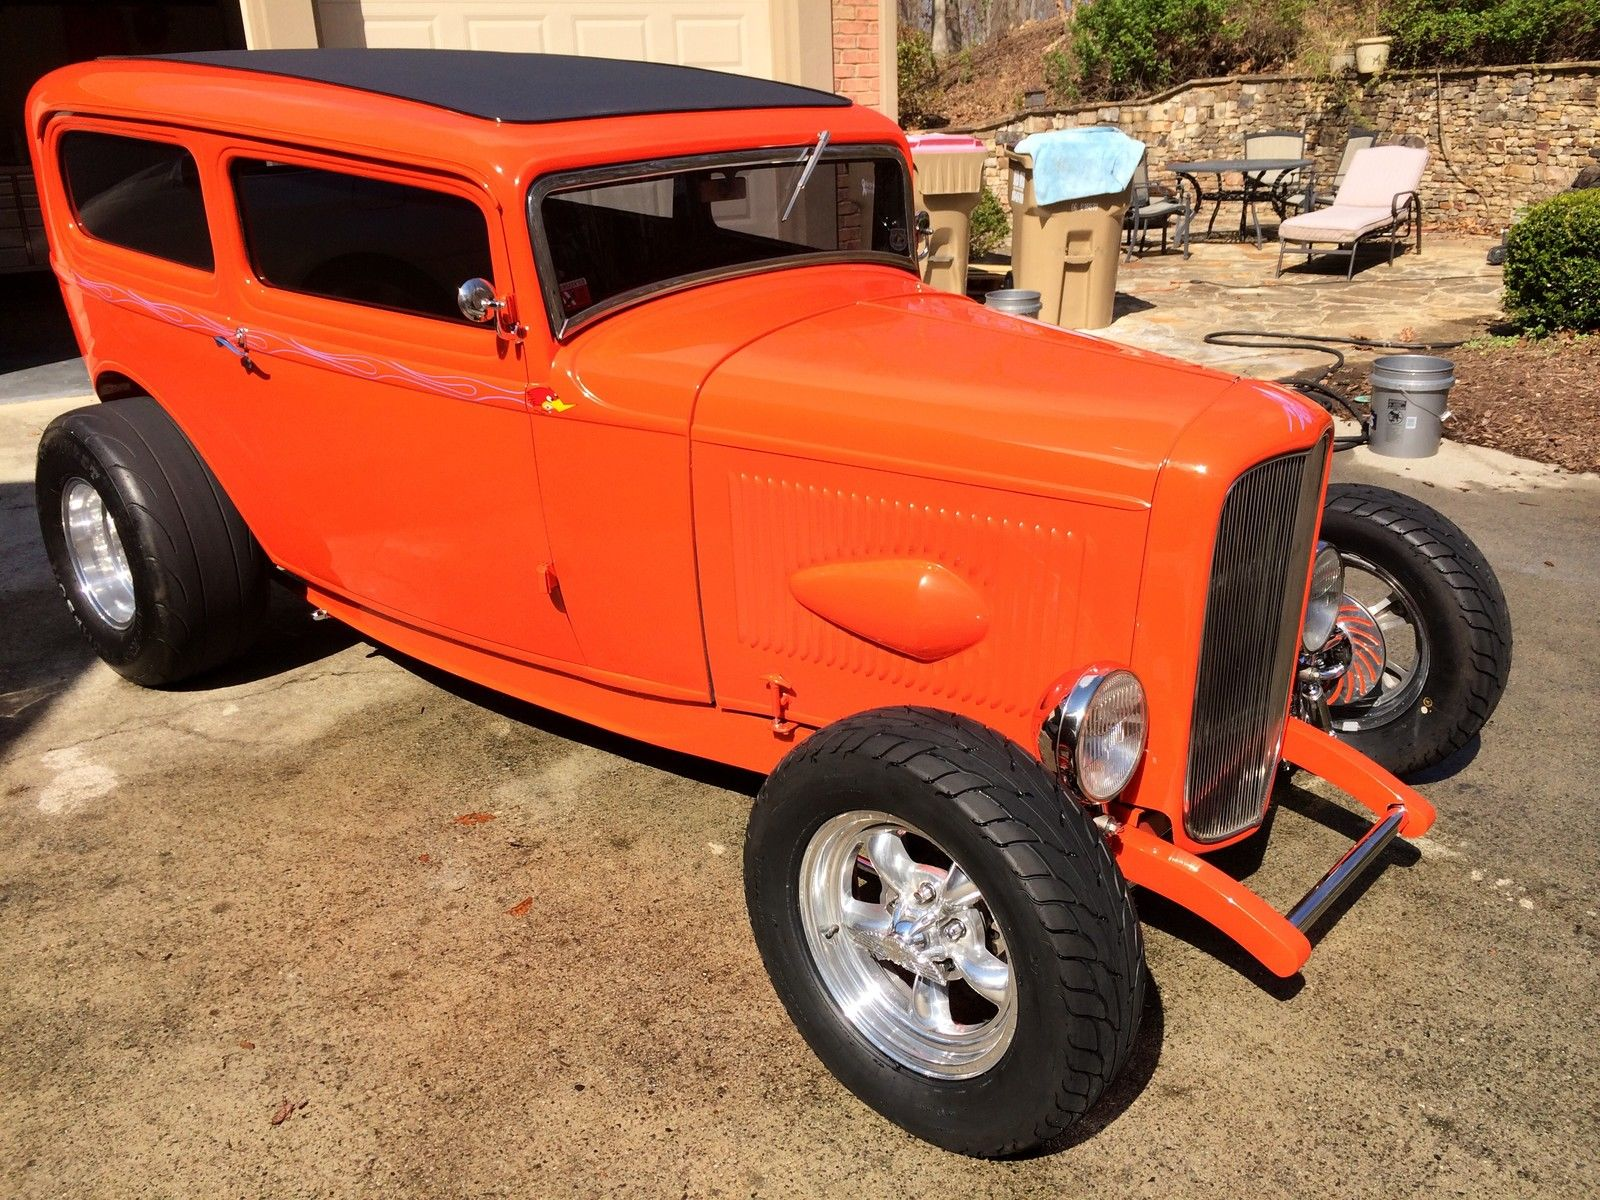 1932 Ford Sedan Hot Rod likewise 1932 Ford Coupe Hot Rod besides 1932 Ford Sedan as well 1932 Ford Sedan Hot Rod in addition 1932 Ford Coupe Hot Rod. on 1932 ford sedan rod